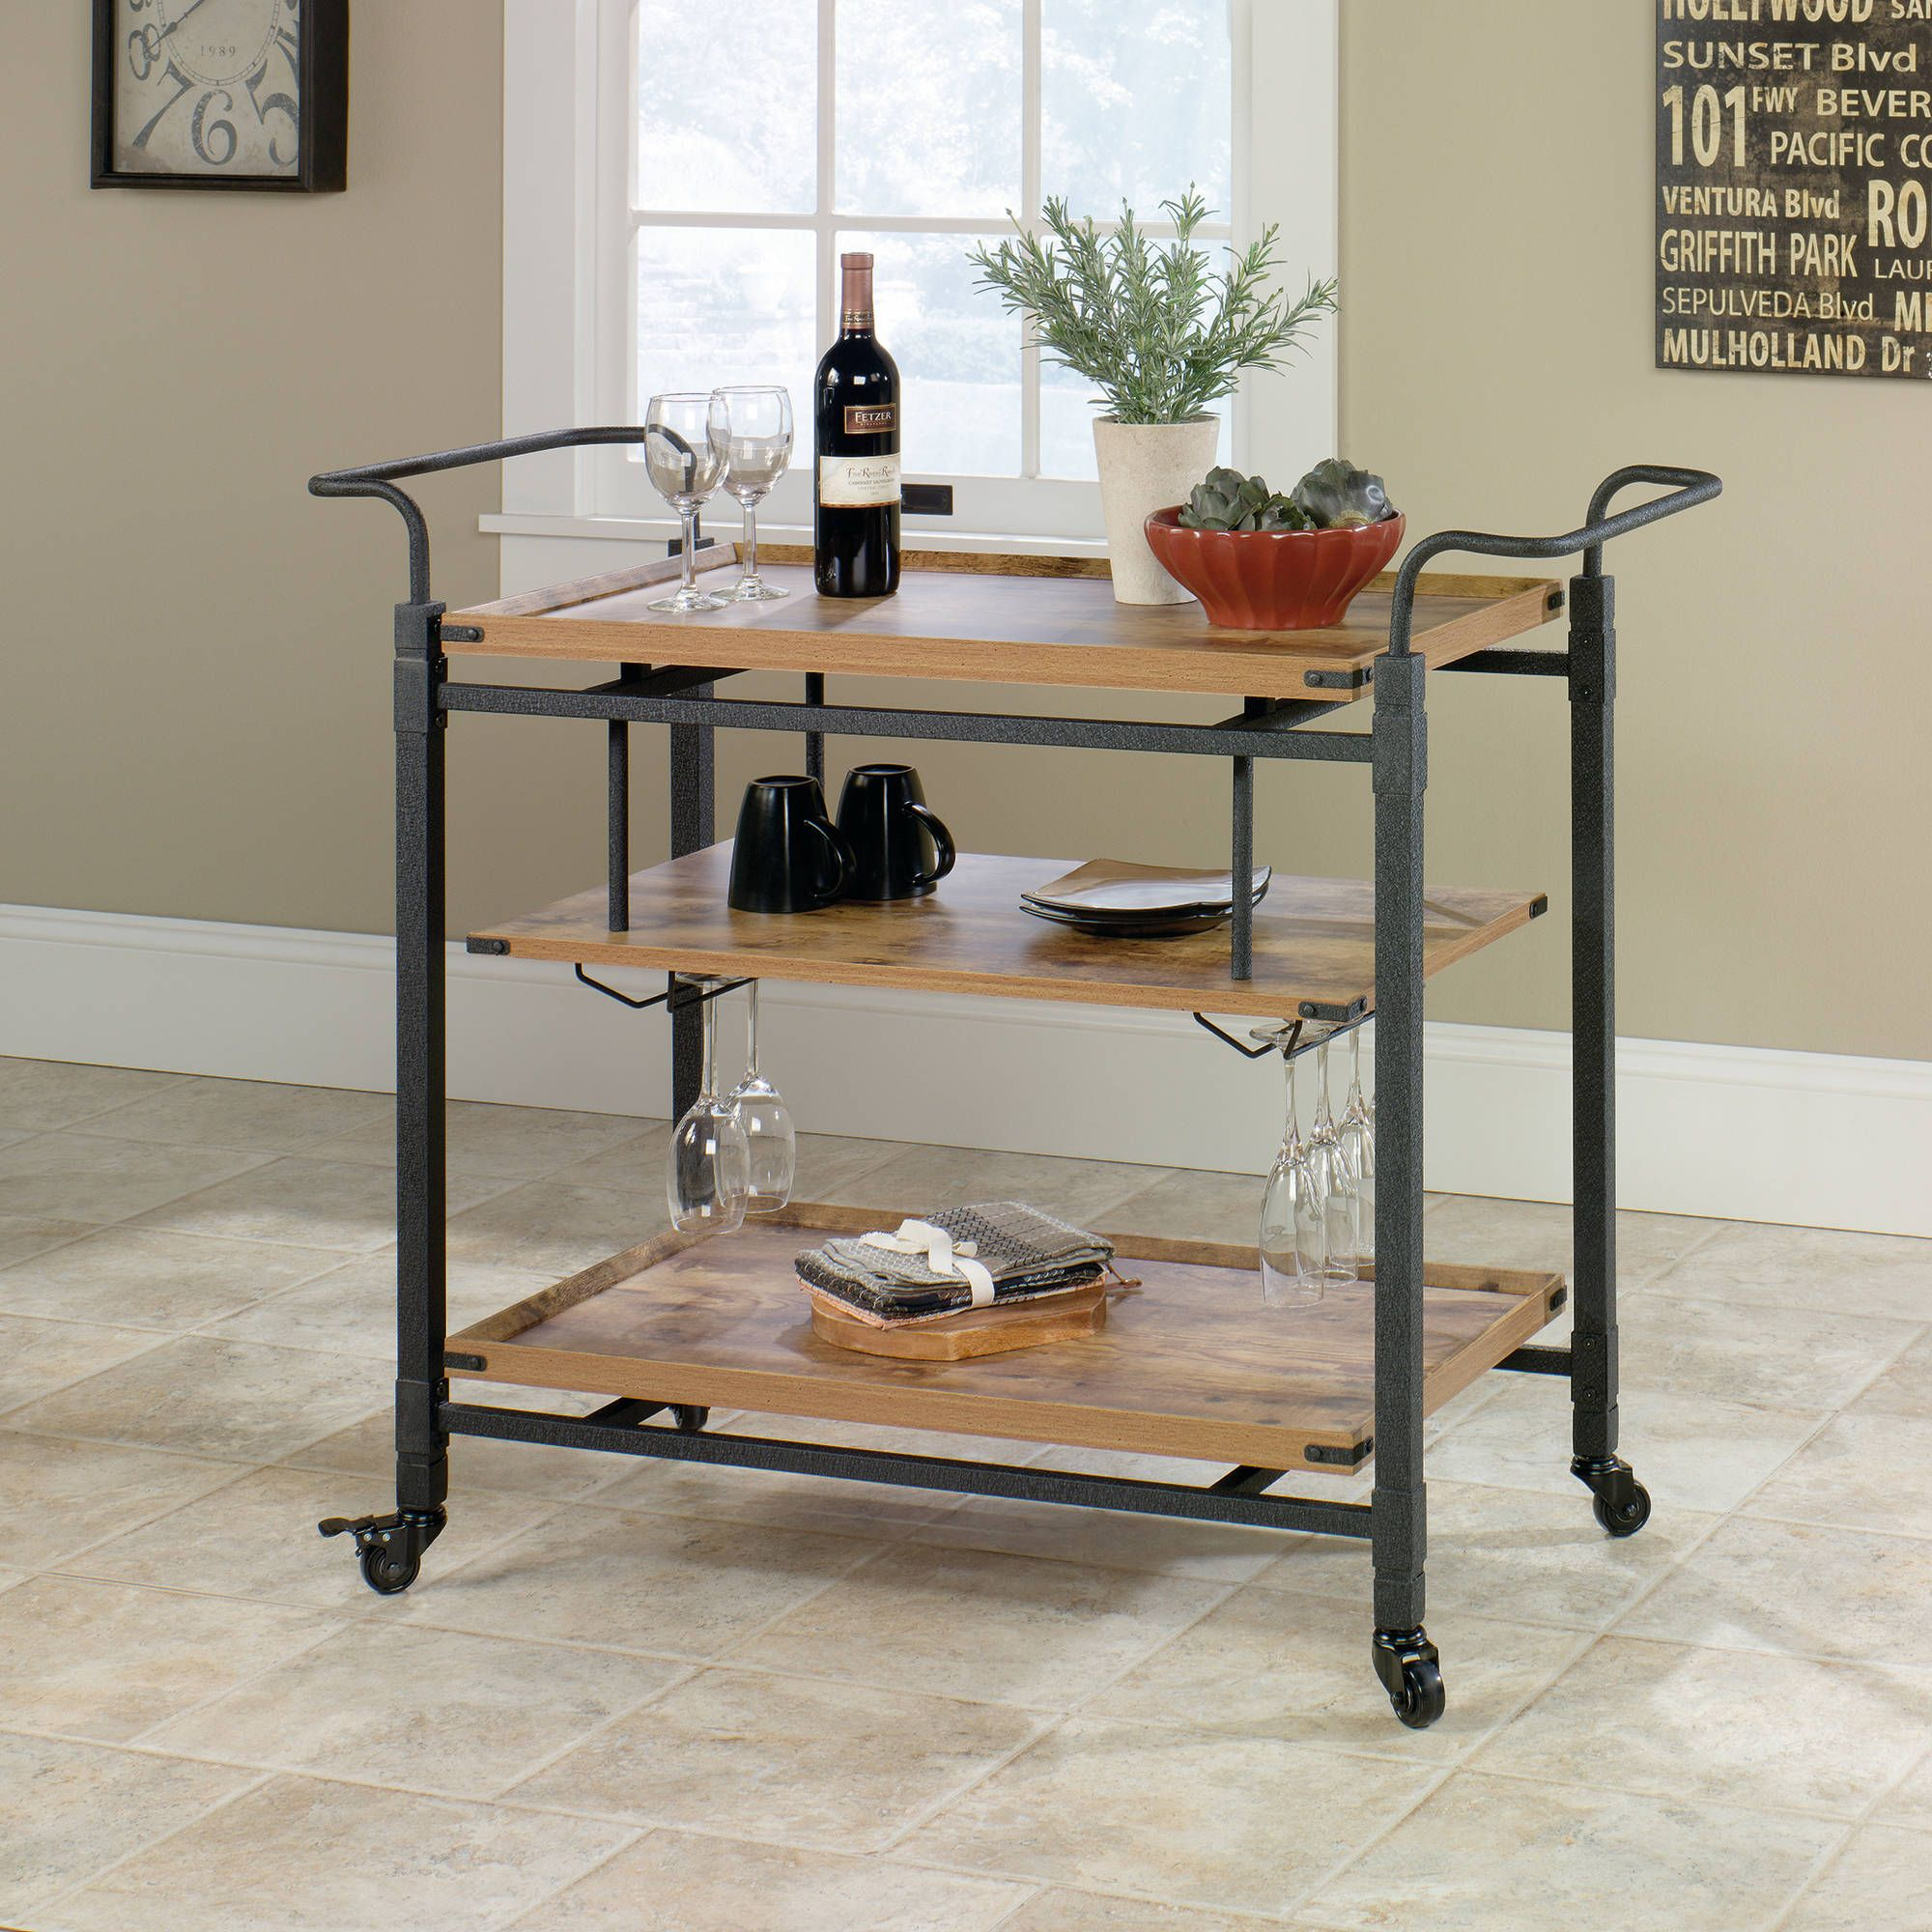 Better Homes And Gardens Rustic Country Bar Cart, Pine Finish   Walmart.com